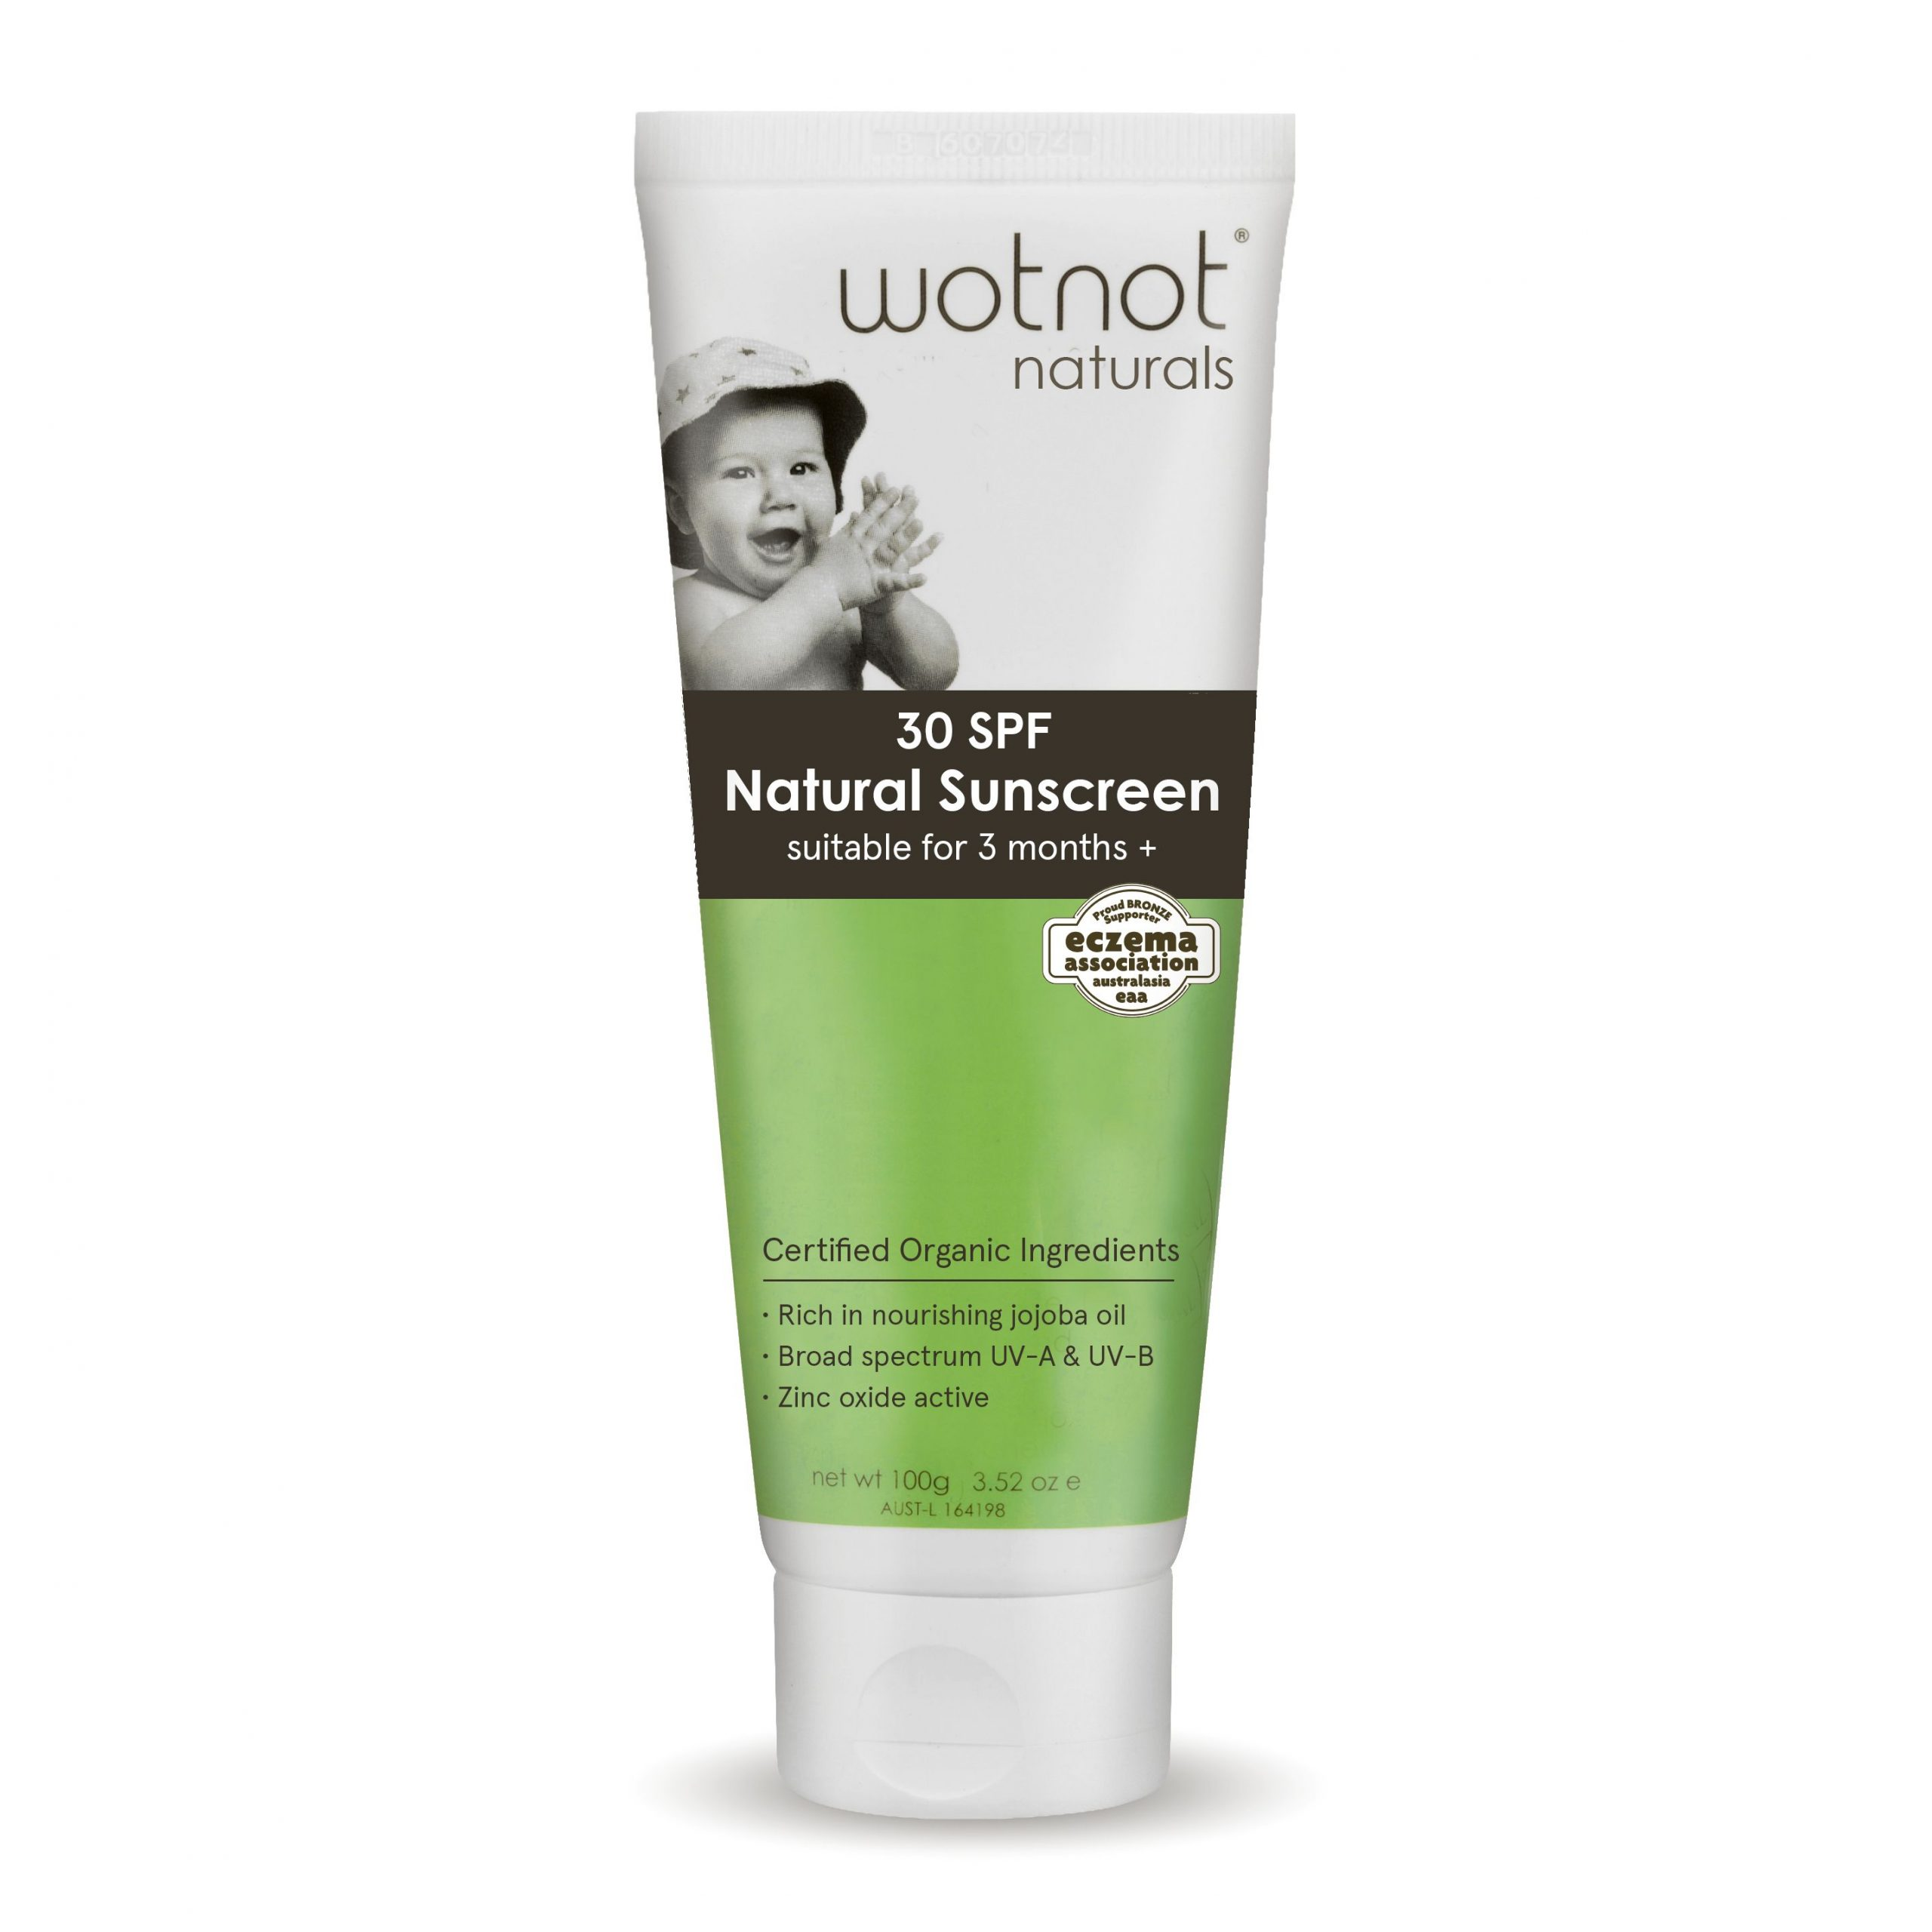 WOTNOT Baby Sunscreen SPF 30+ (100G) (Expiry Date May 2024)